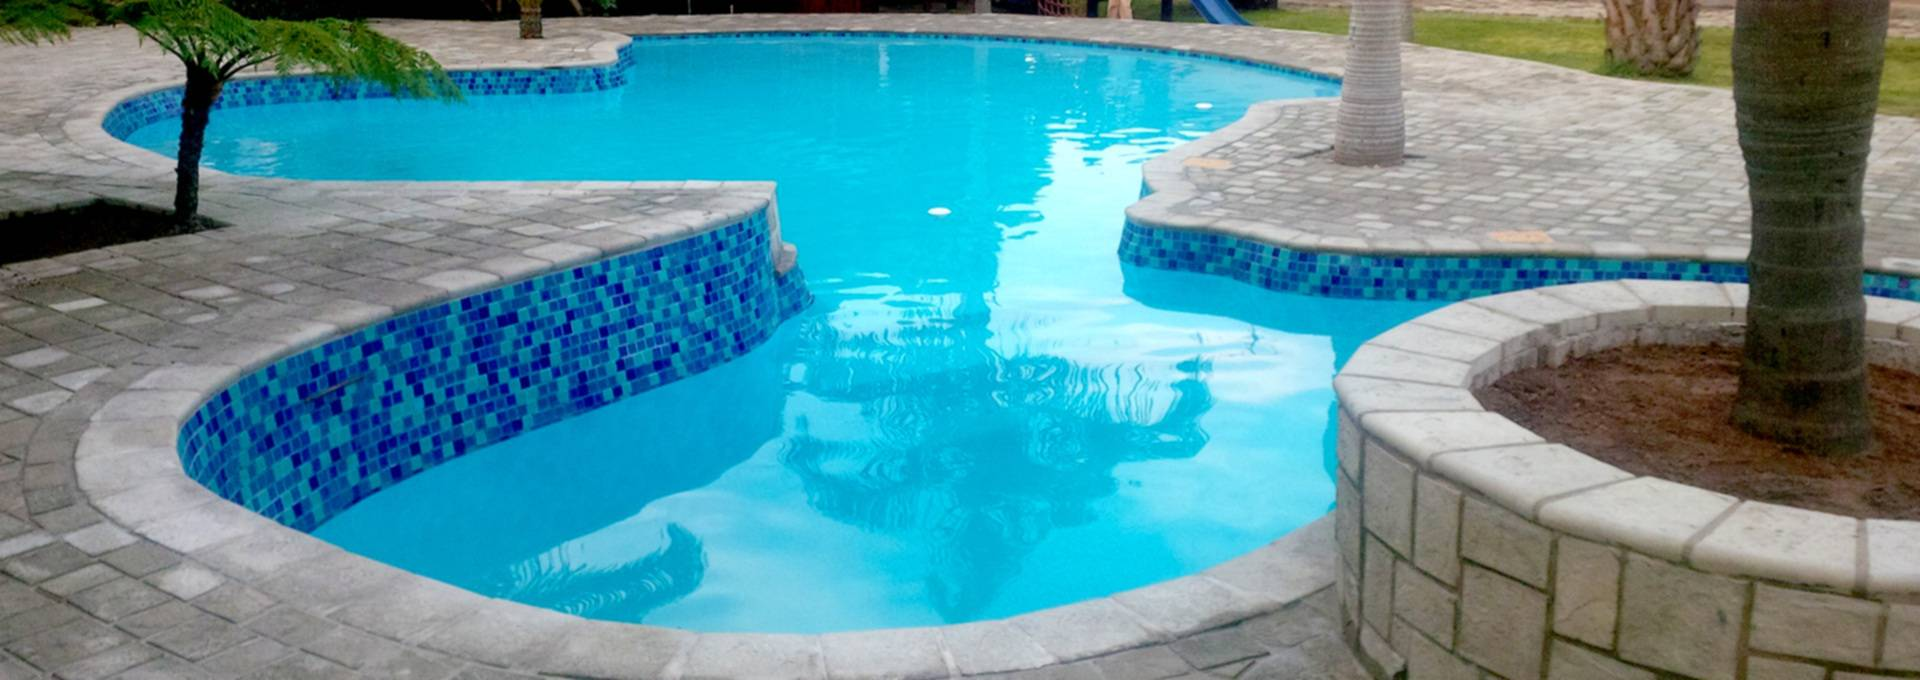 Swimming pool installations repairs equipment bayline Fibreglass pools vs concrete pools